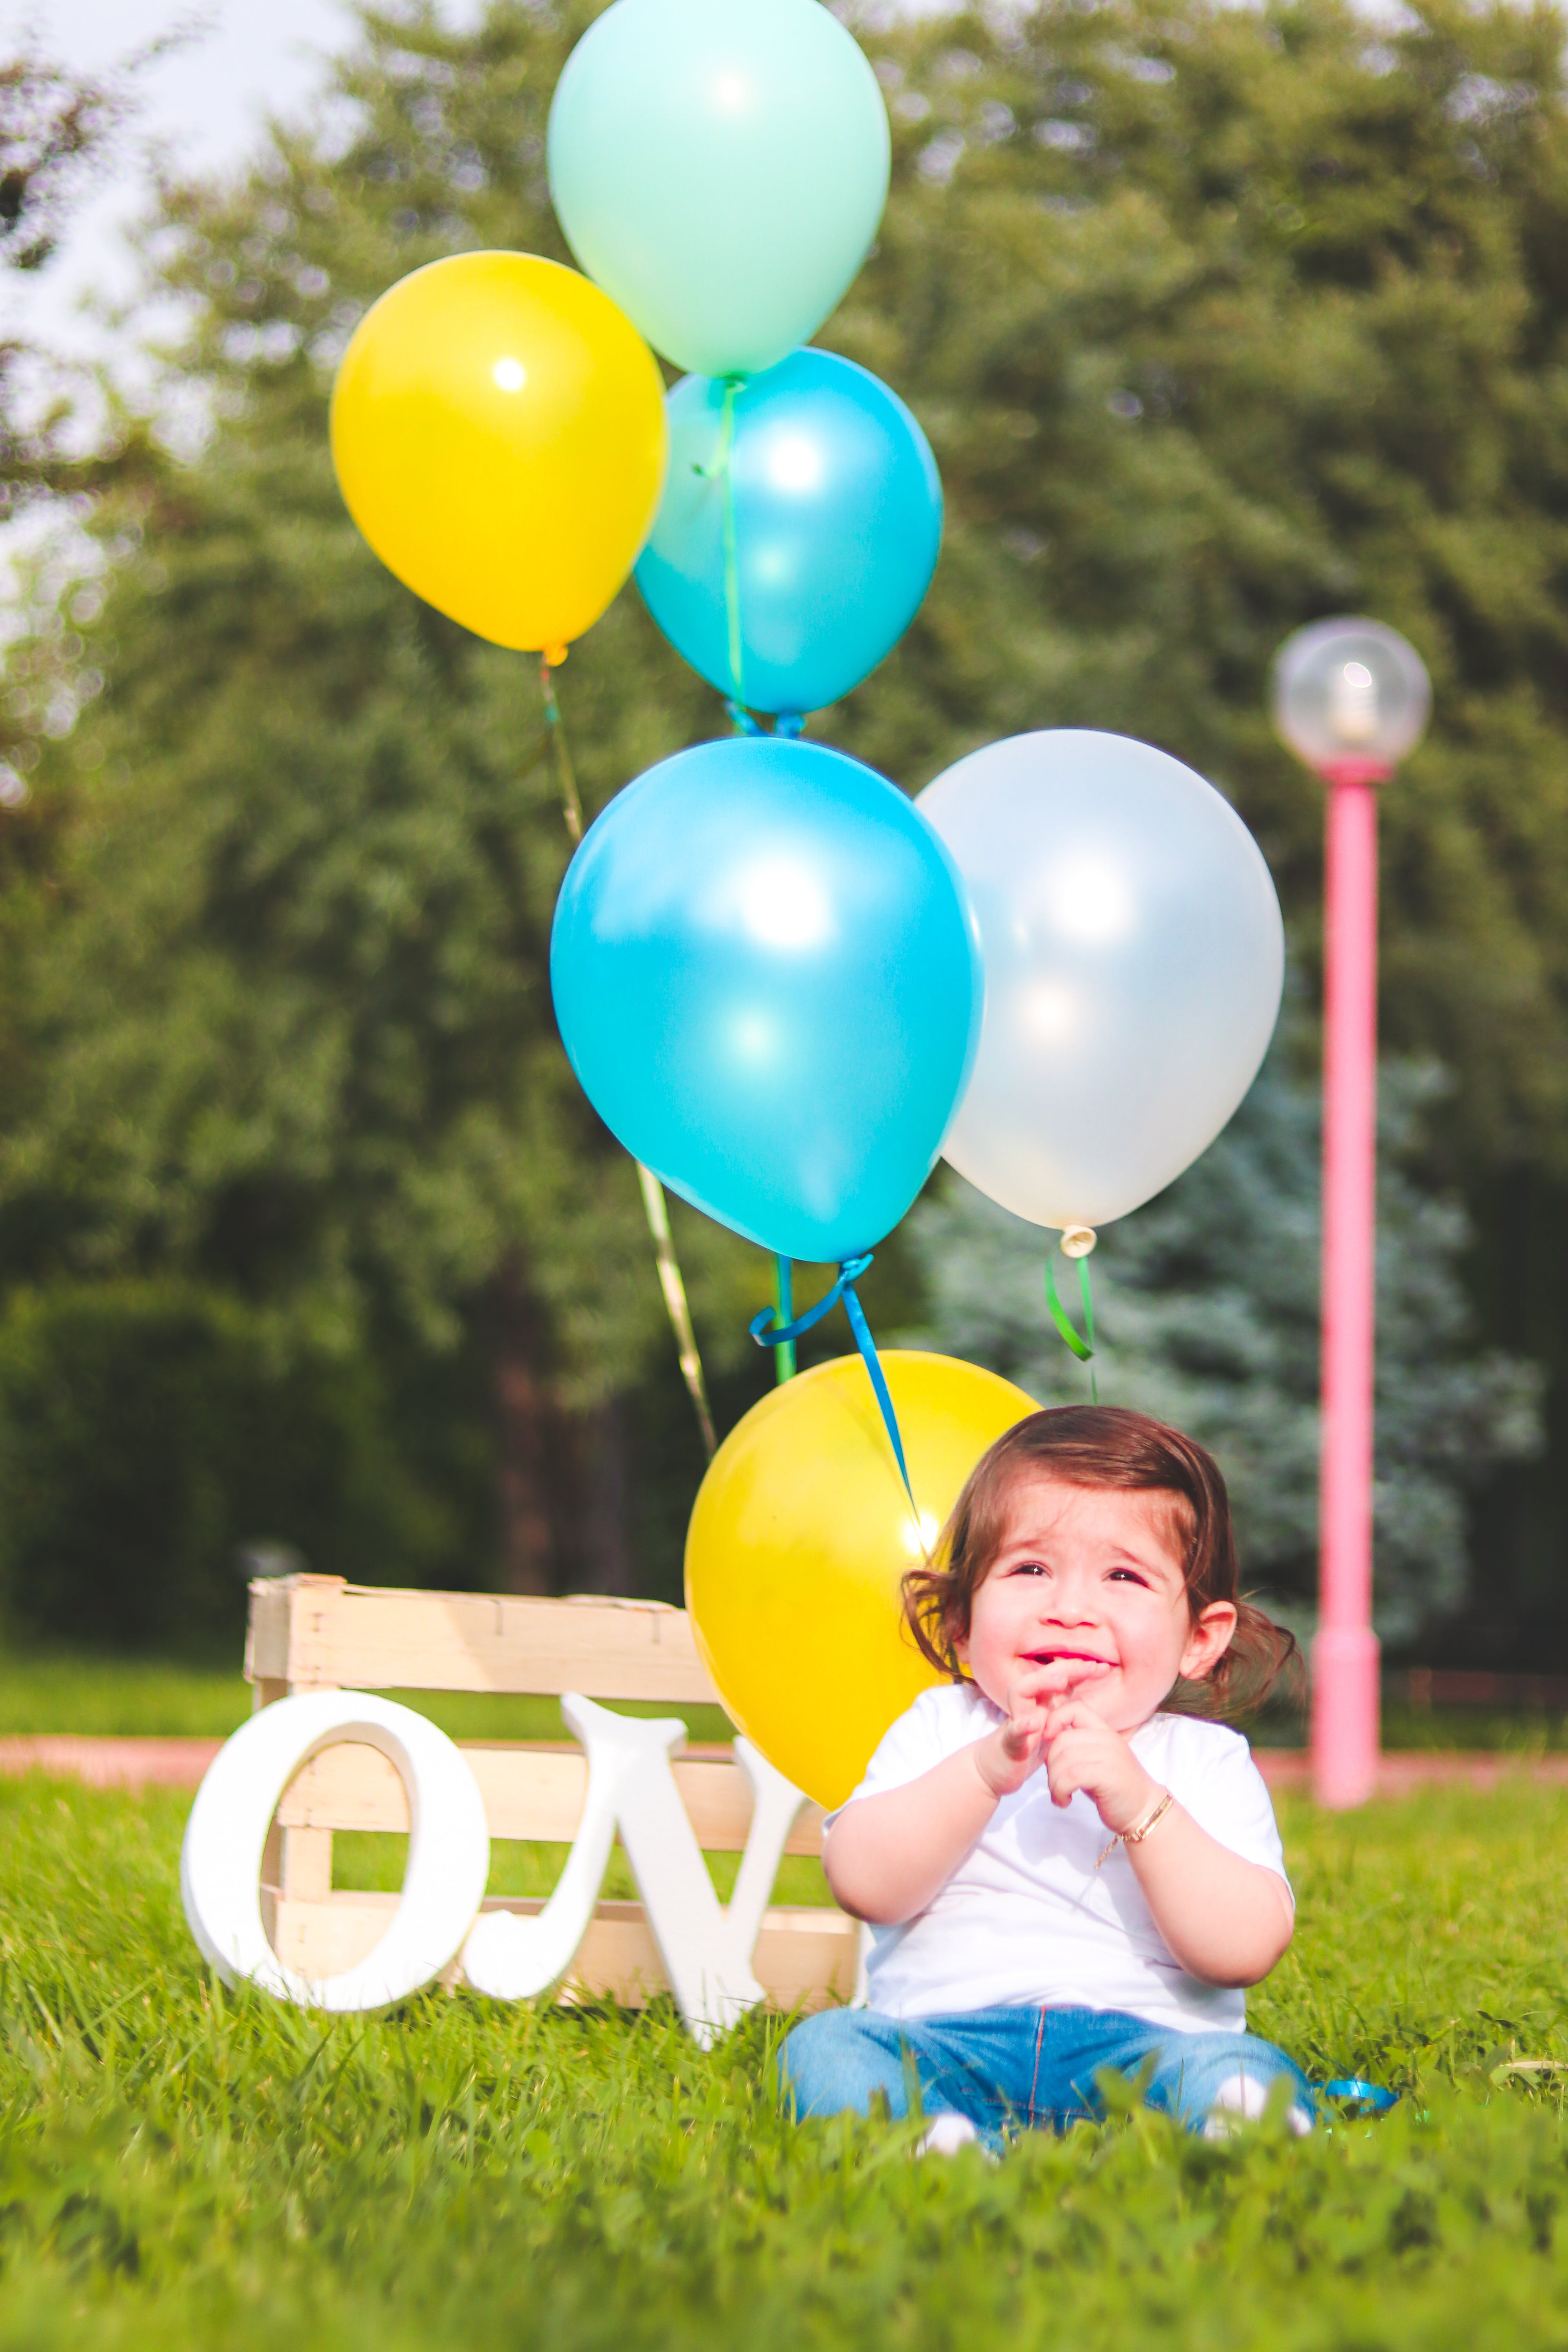 Girl Wearing White Shirt Near Teal, White, and Yellow Ballons